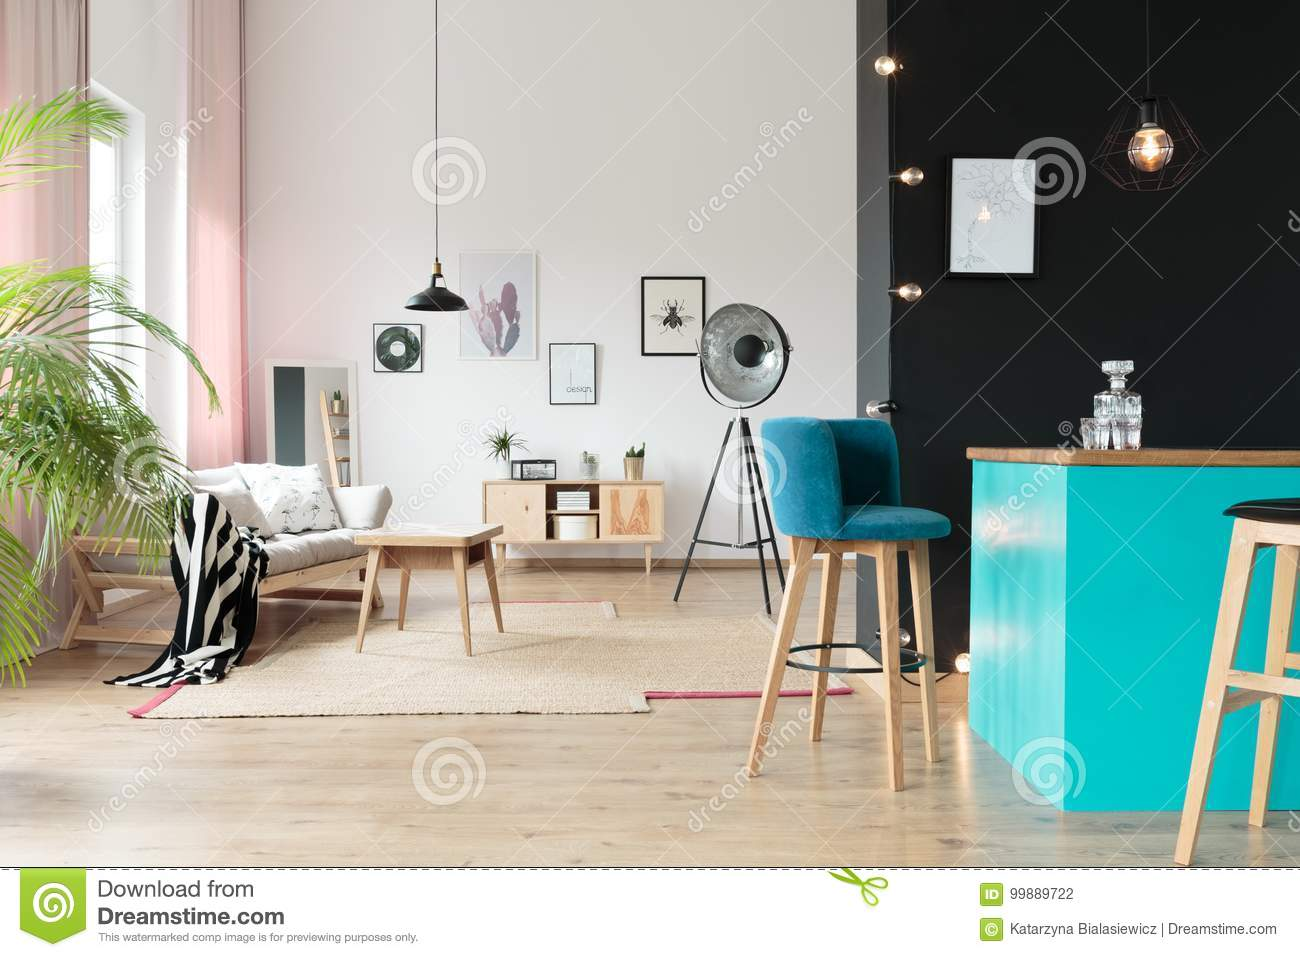 Designer Lamp In Open Relax Space With Suede Barstool At Blue Minibar Against Black Wall